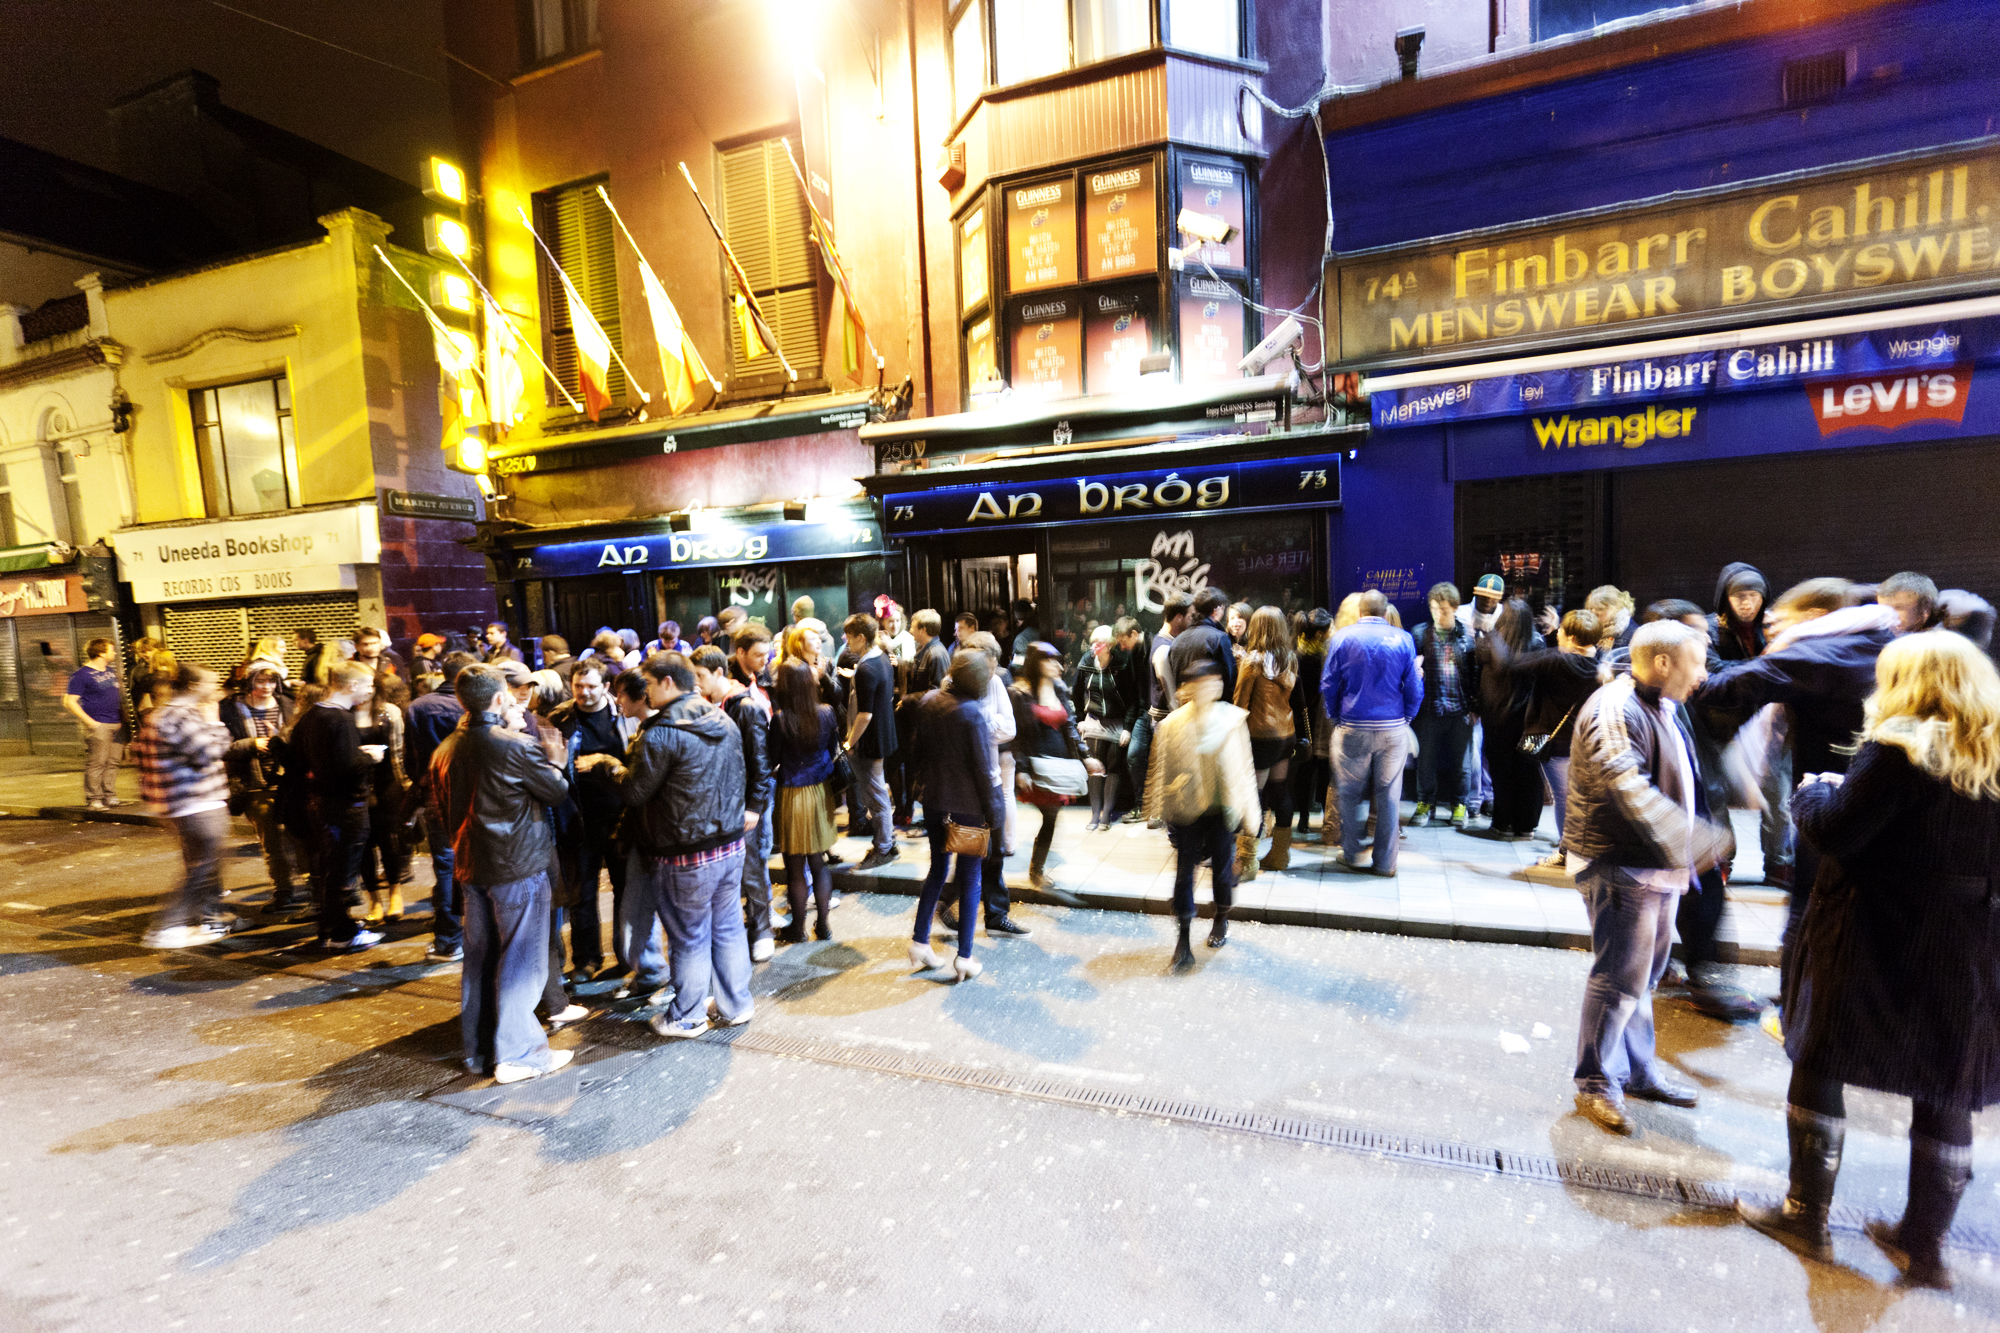 Cork, Ireland - January 21, 2012: Revellers enjoy a Saturday night out in Cork. People stand around talking after leaving nearby bars and clubs at closing time.